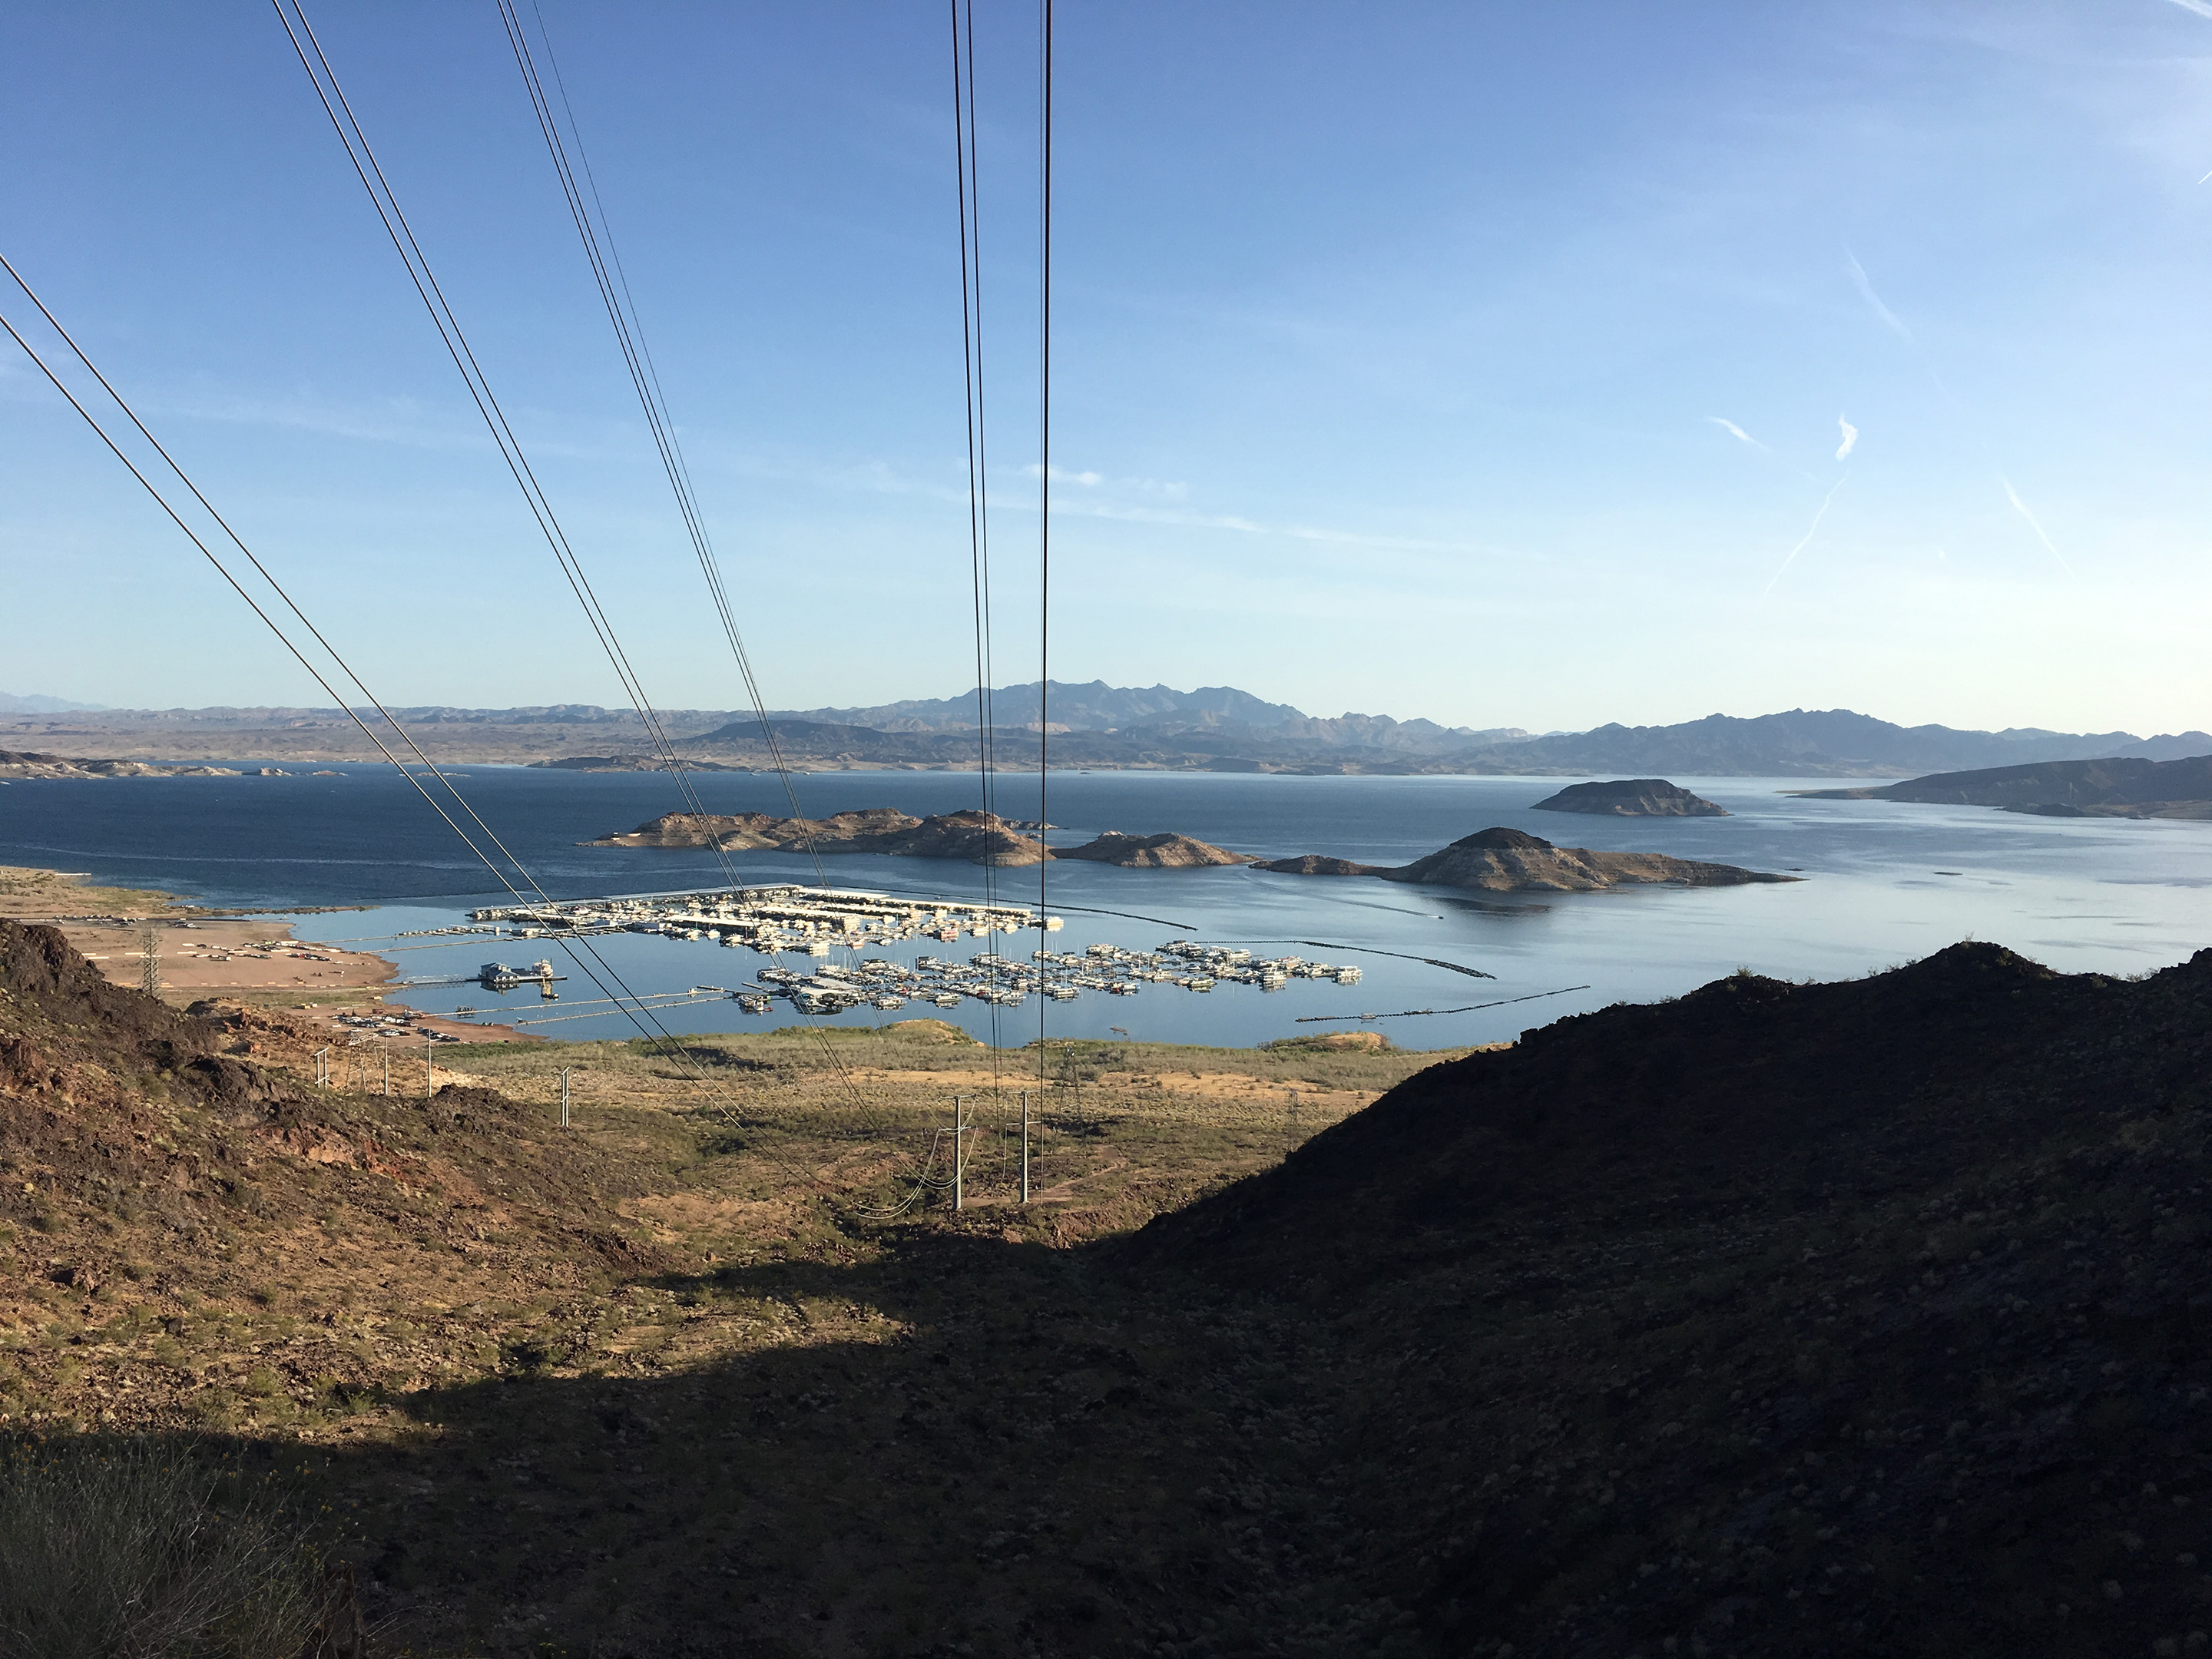 Lake Mead, with more Hoover Dam powerlines